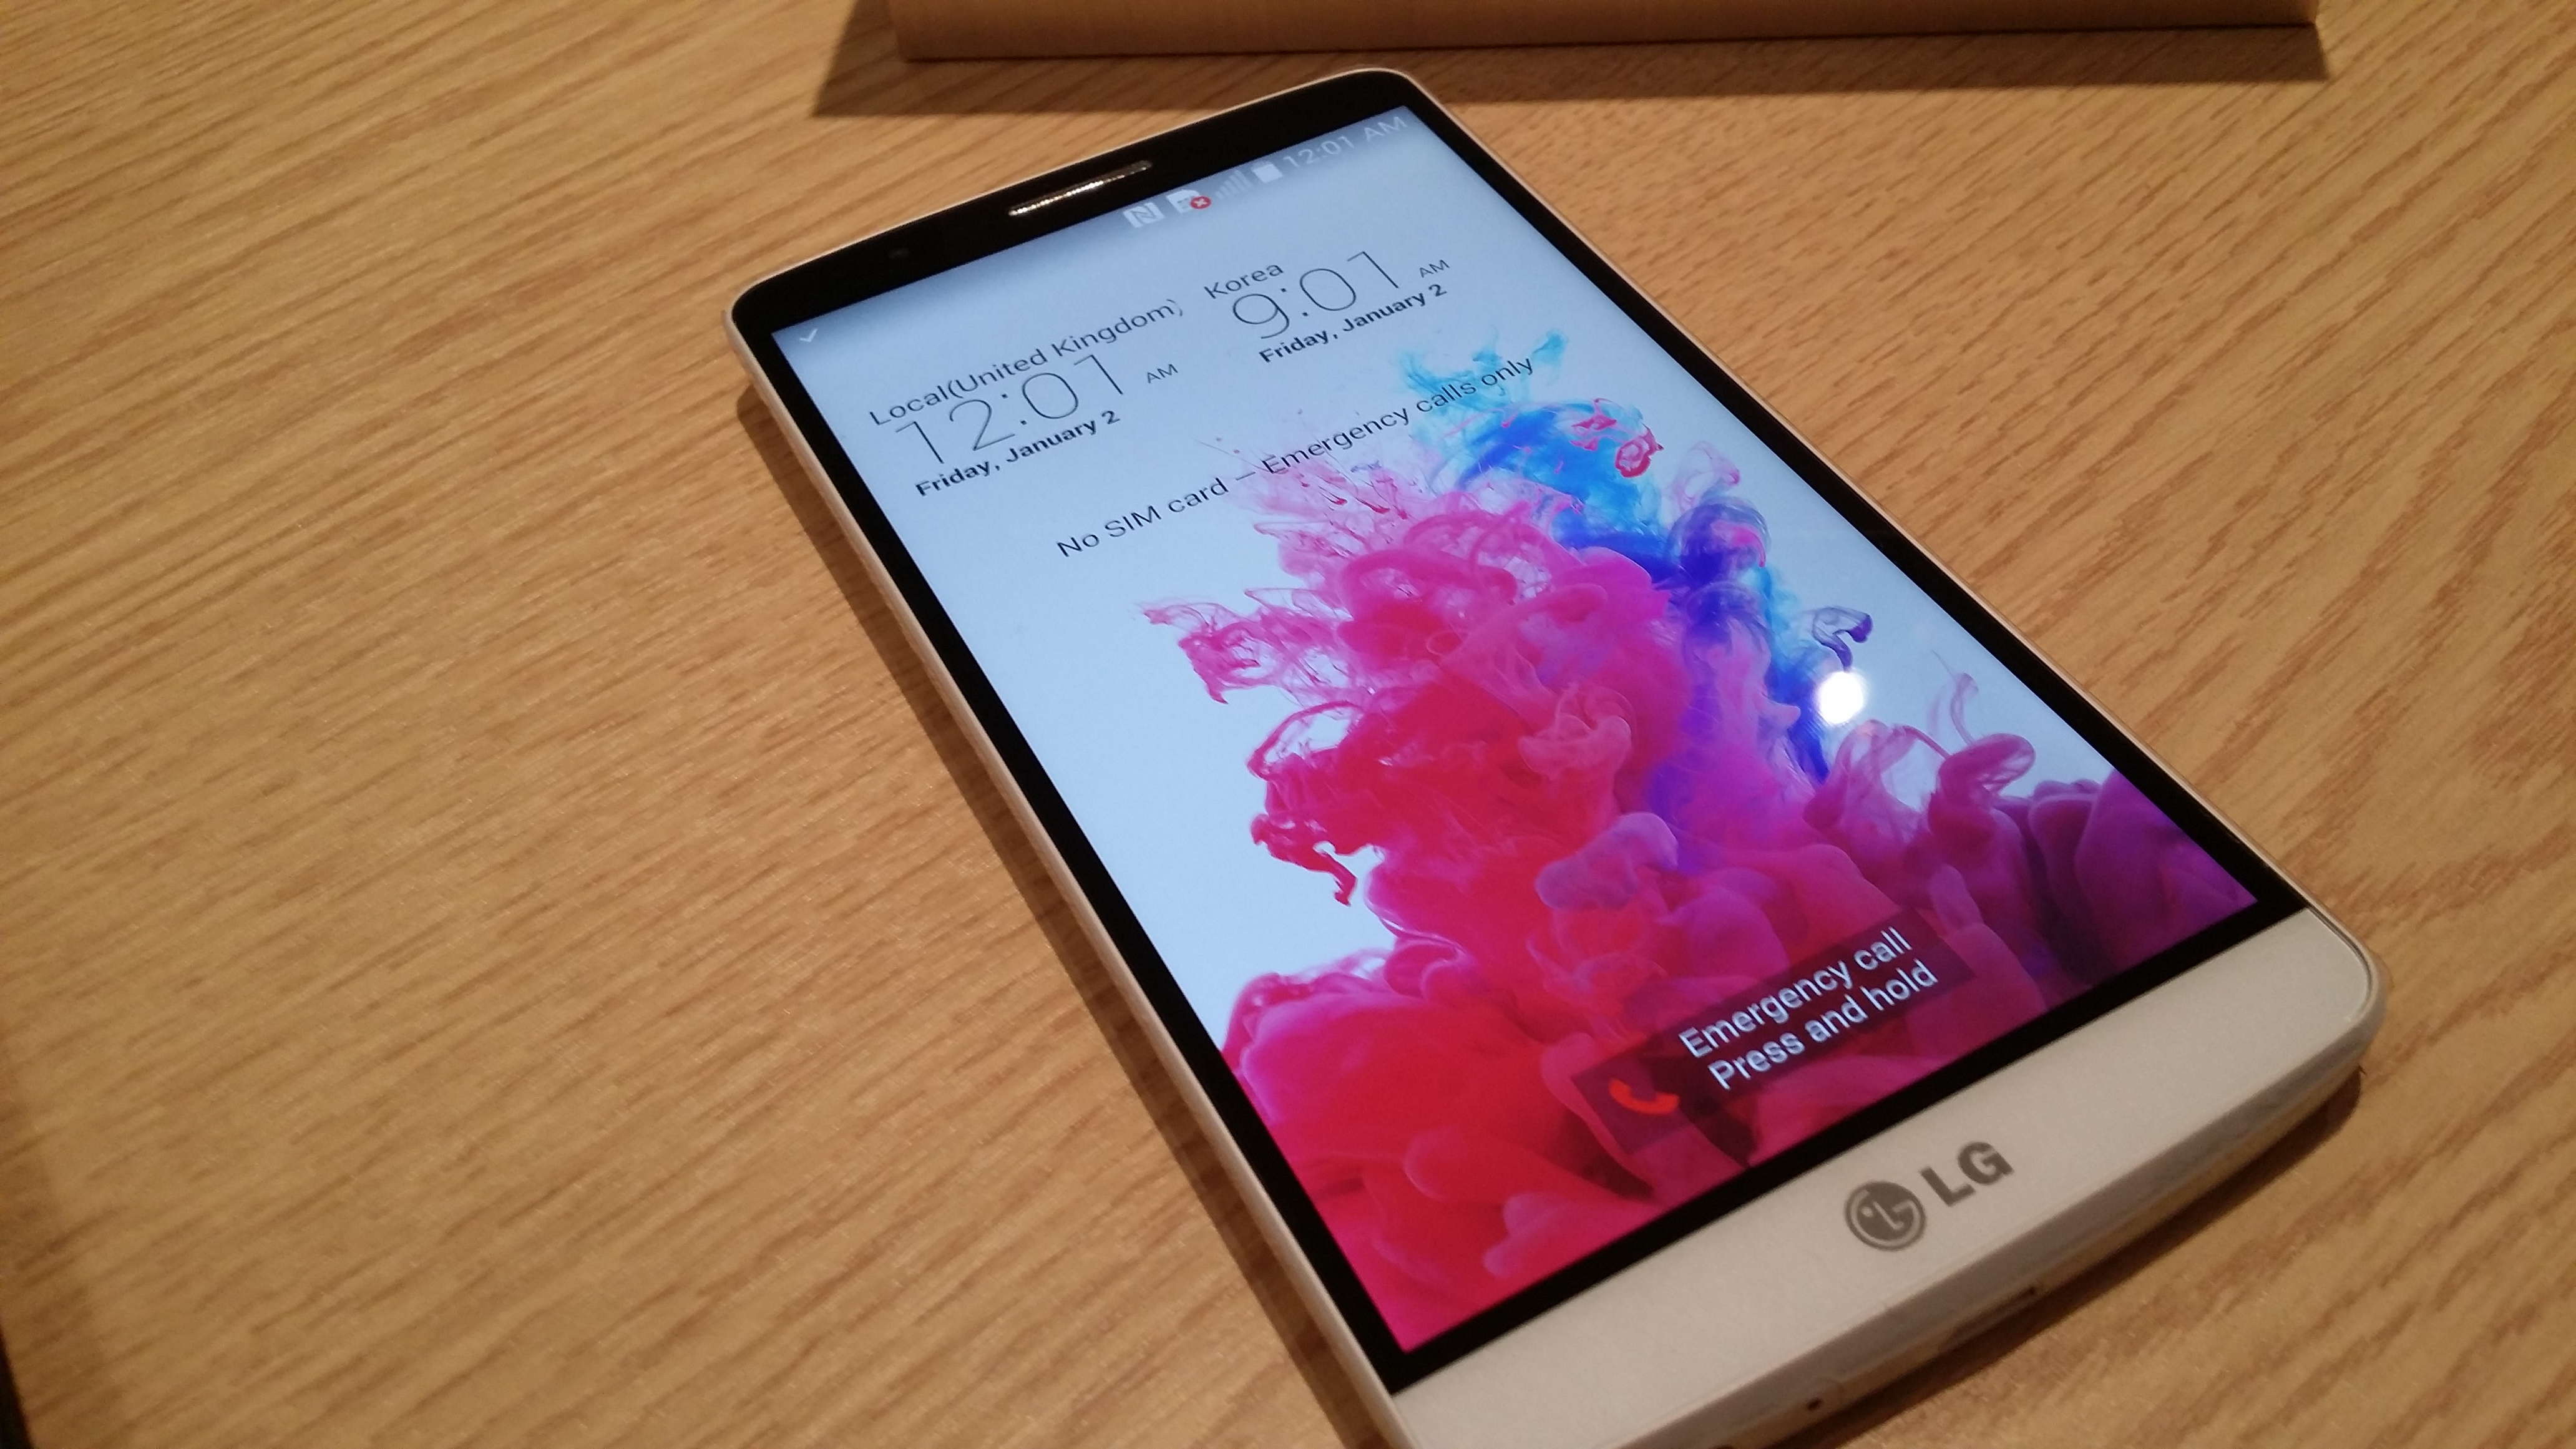 LG G3 Review Third Times A Charm For LGs 55 Flagship